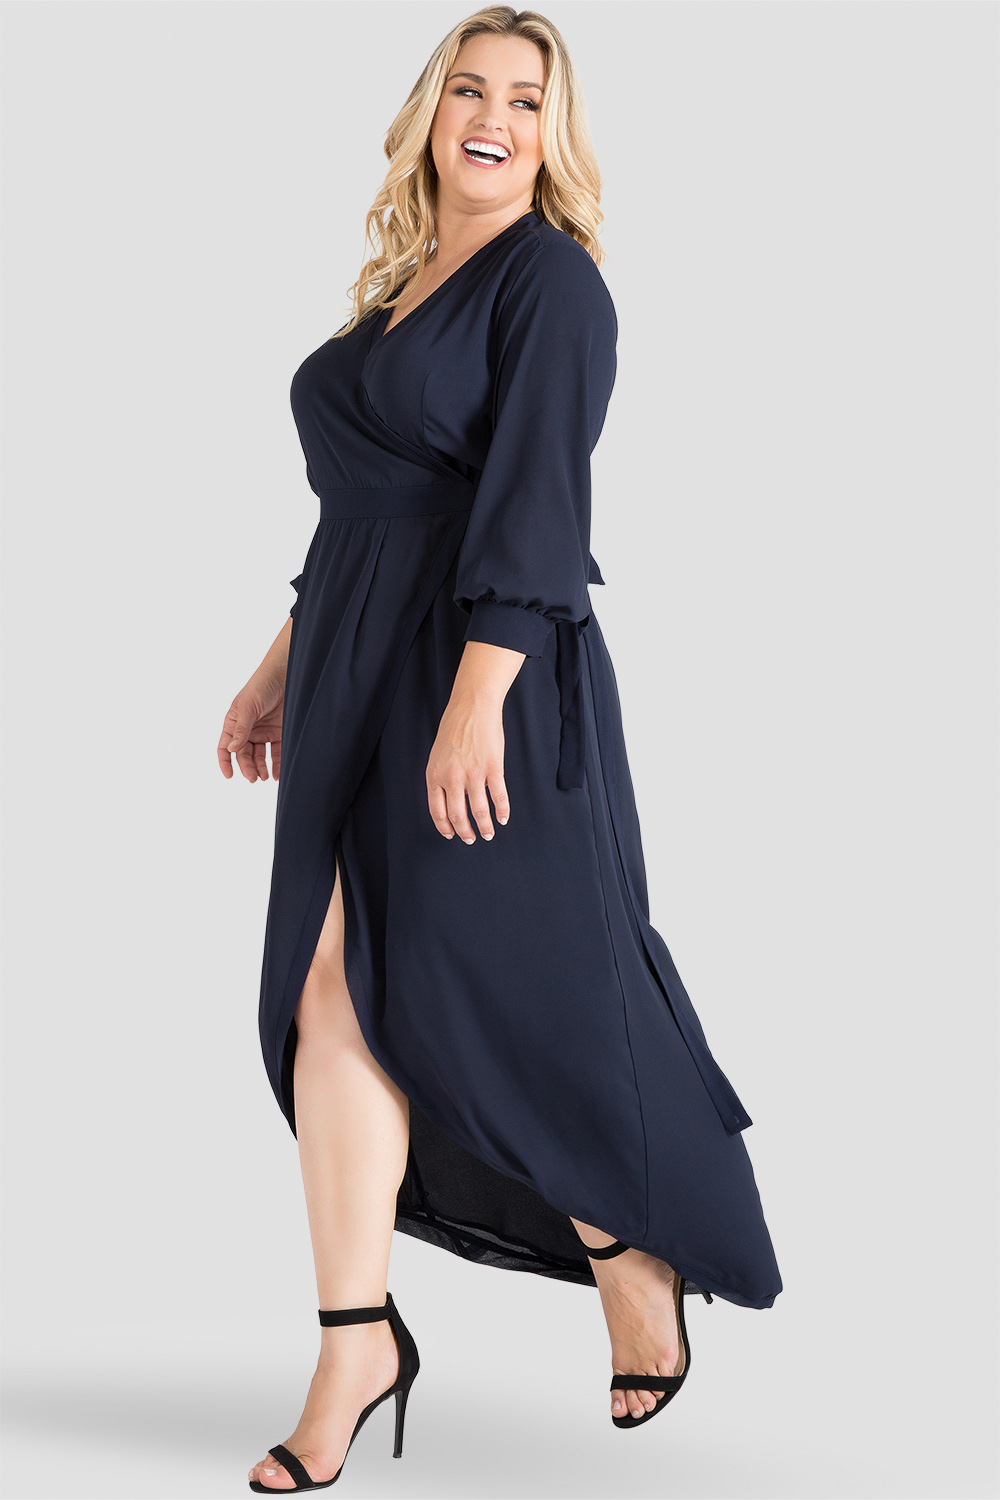 Plus Size Elle Midnight Blue Print Tulip High Low Chiffon Wrap Dress Side